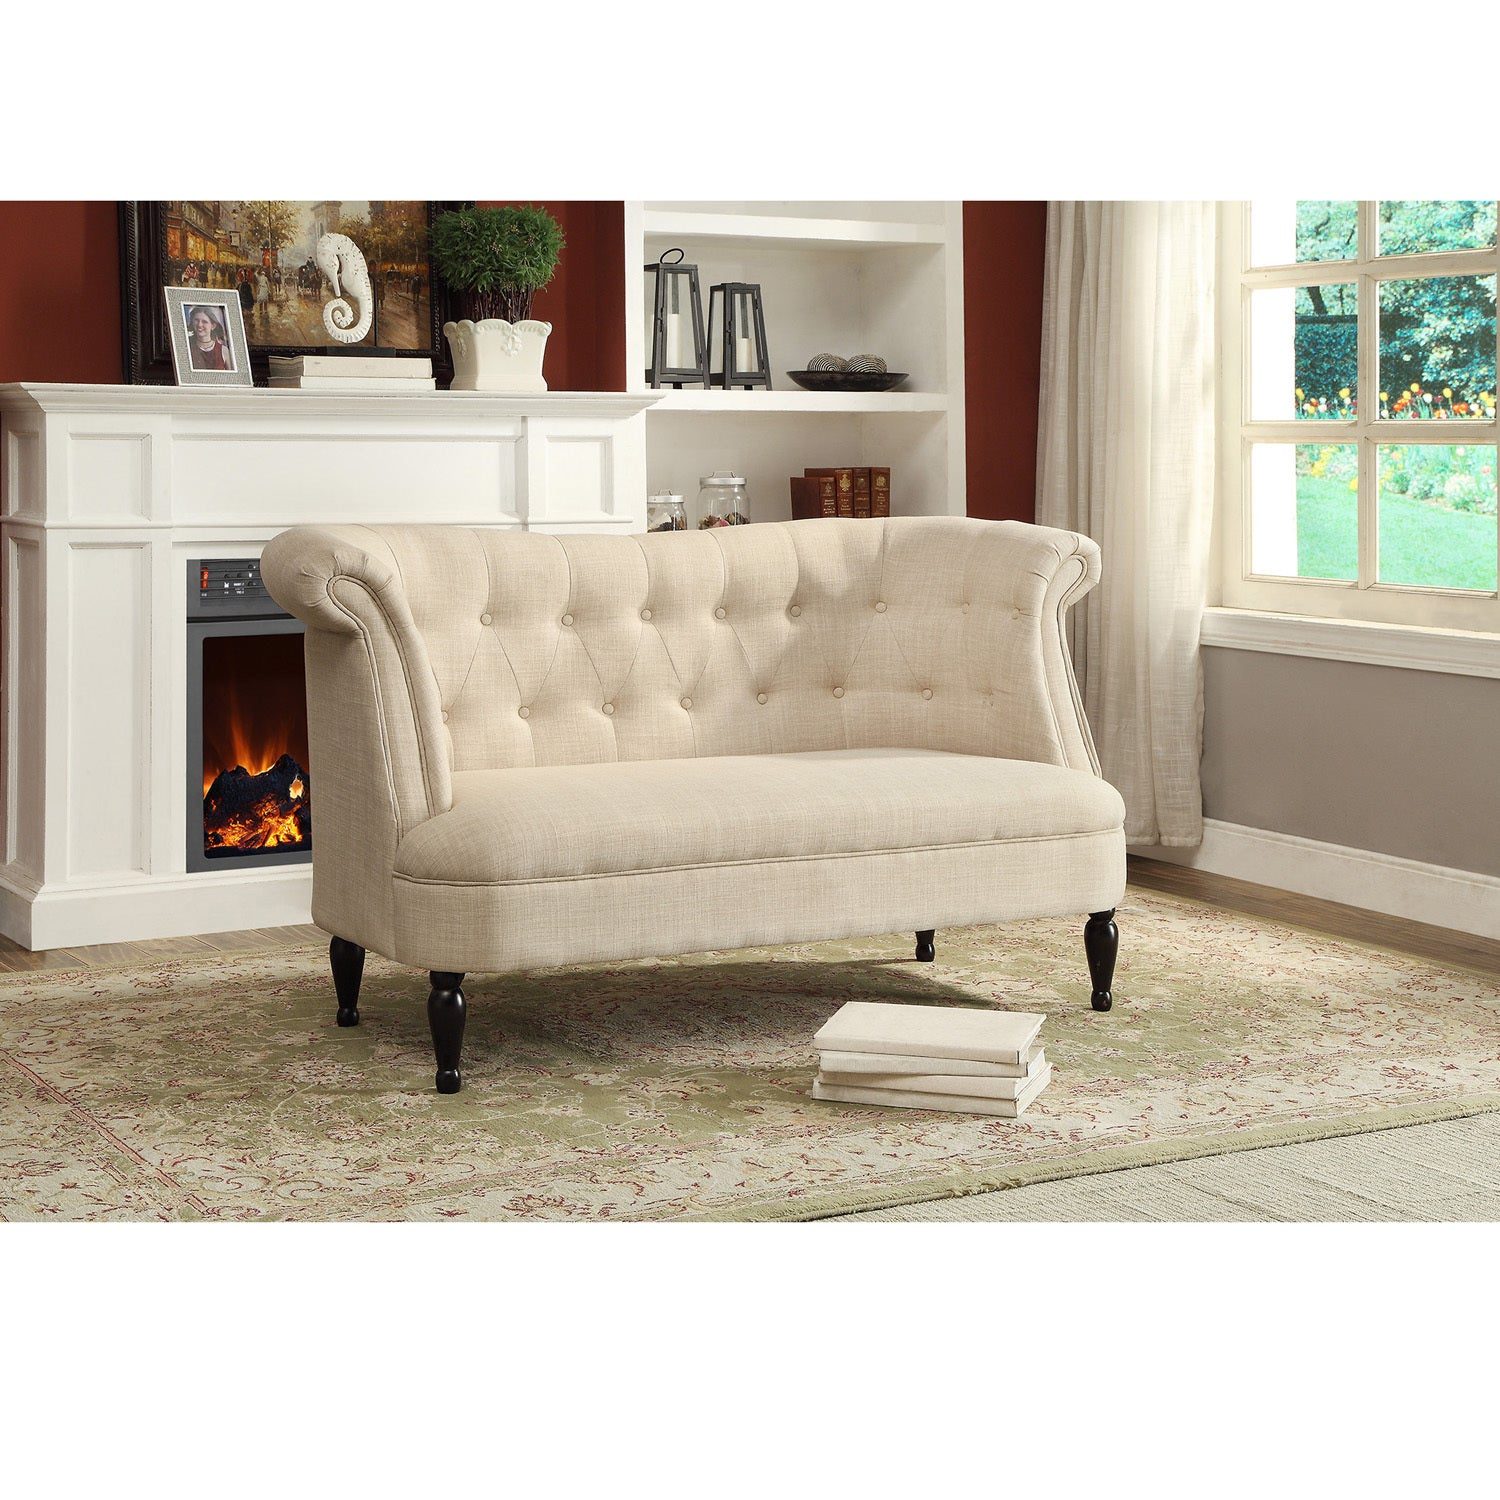 Erica Victorian Style Contemporary Beige Linen Fabric Upholstered ...